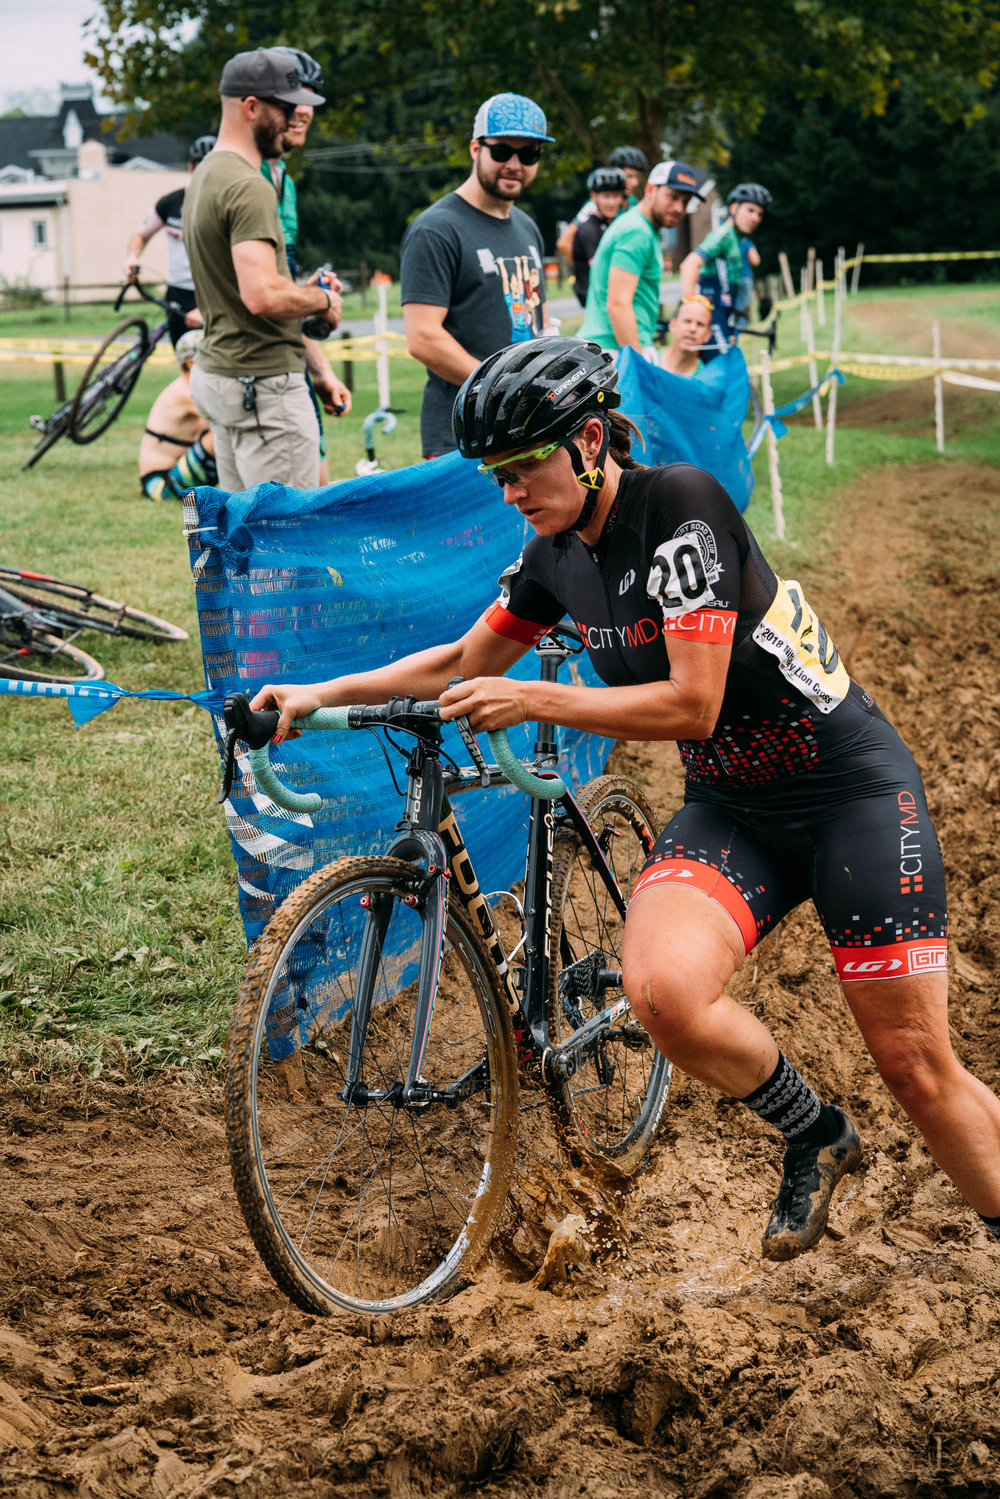 photo-rhetoric-to-be-determined-nittany-cyclocross-1141.jpg